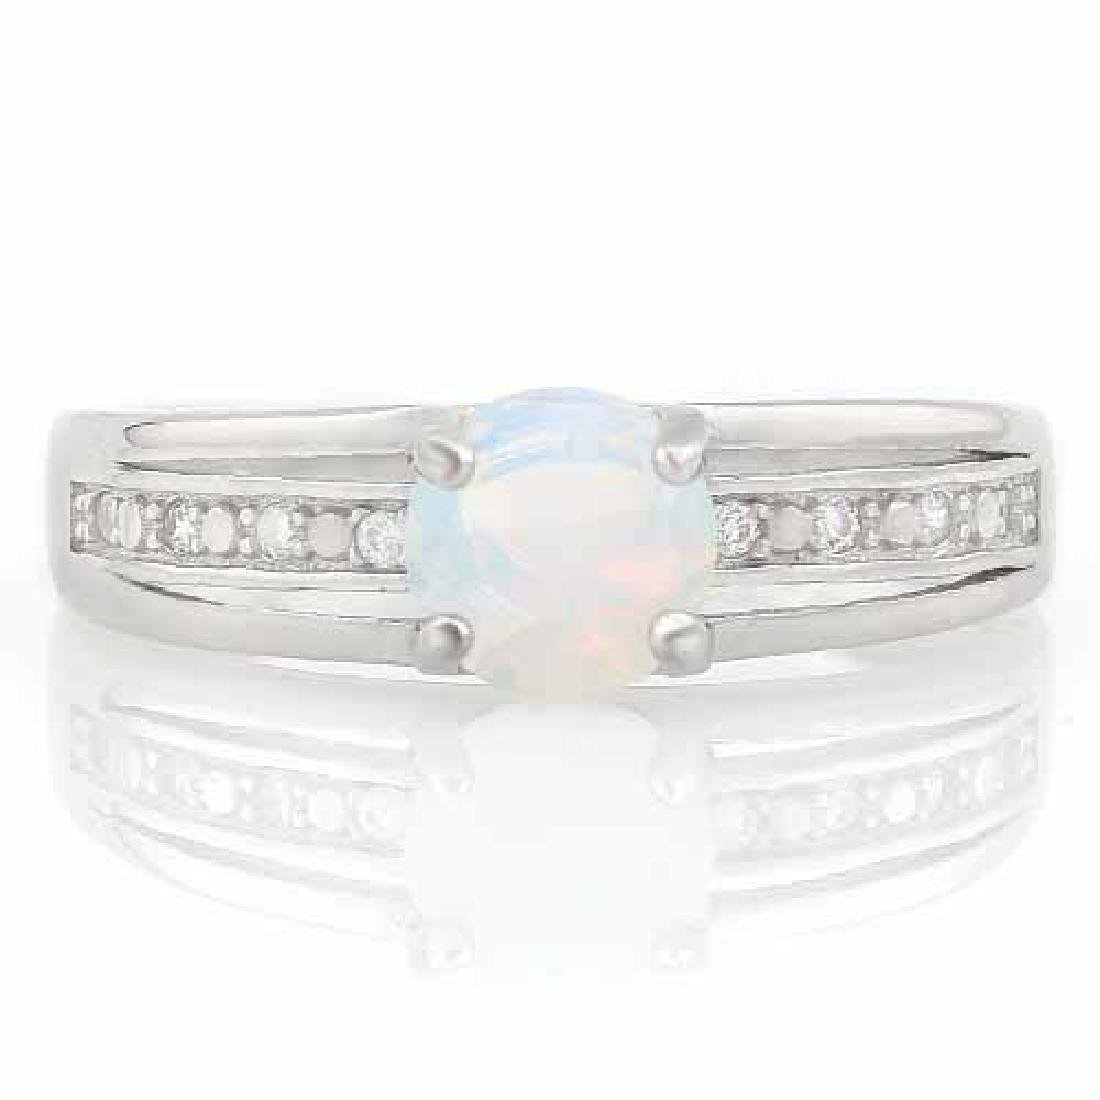 1 CARAT CREATED FIRE OPAL & DIAMOND 925 STERLING SILVER